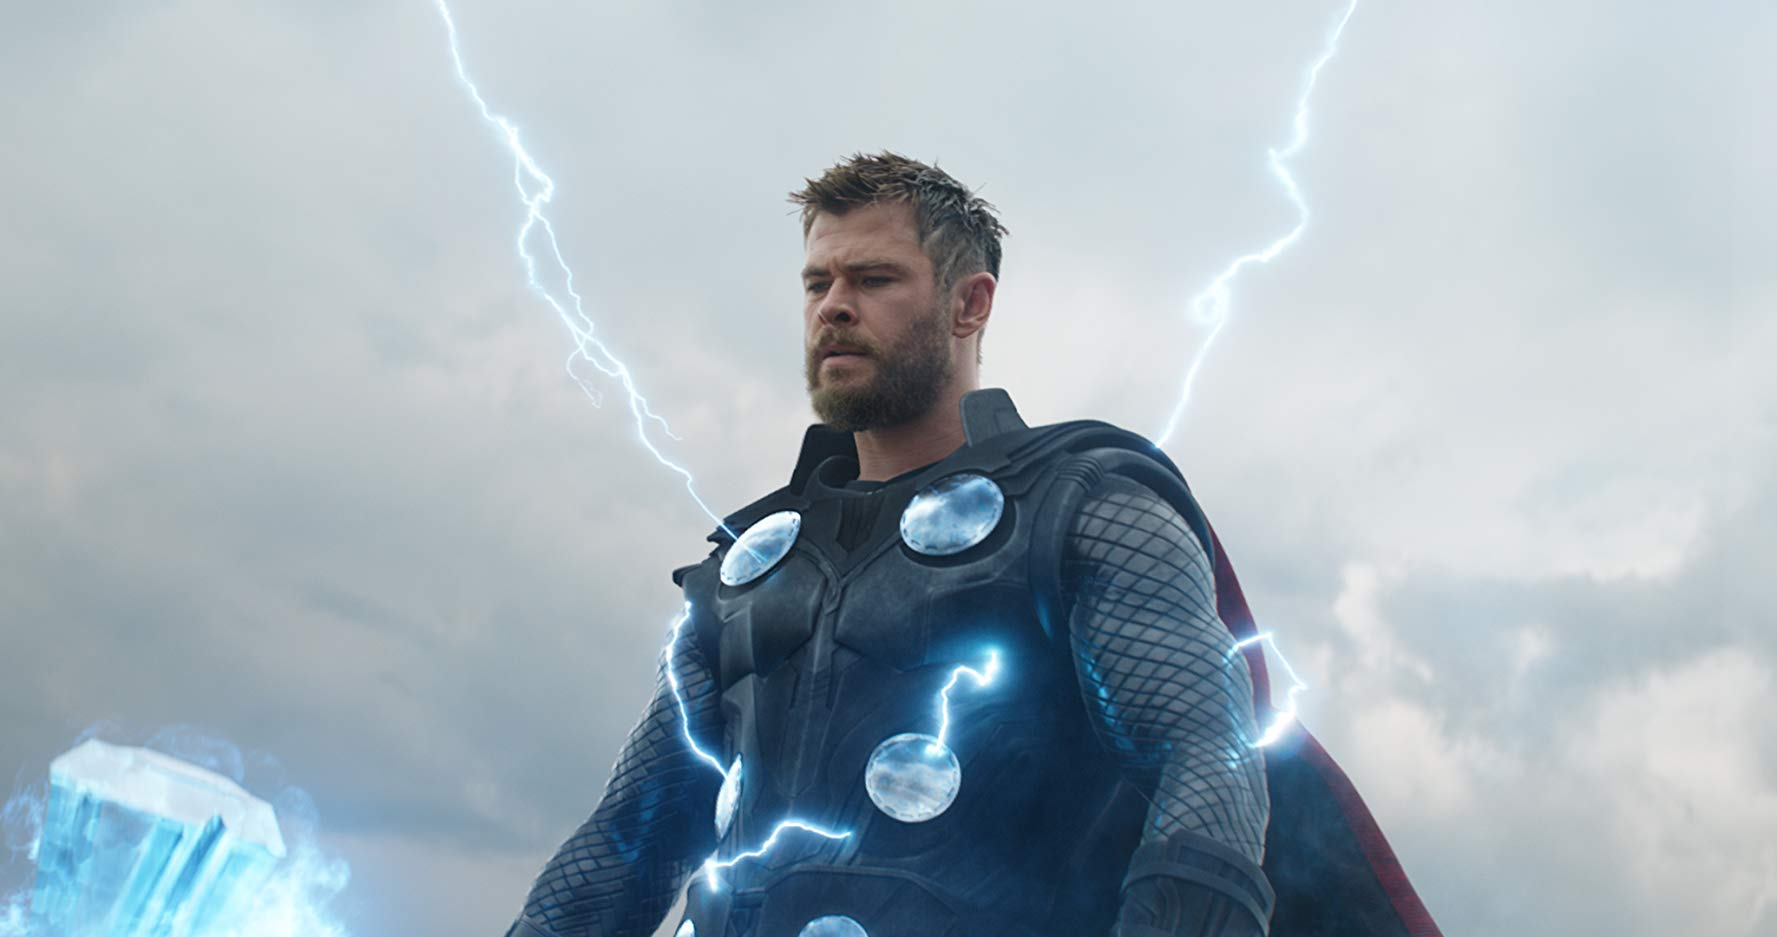 Chris Hemsworth in avengers: endgame (2019) review by cultural hater